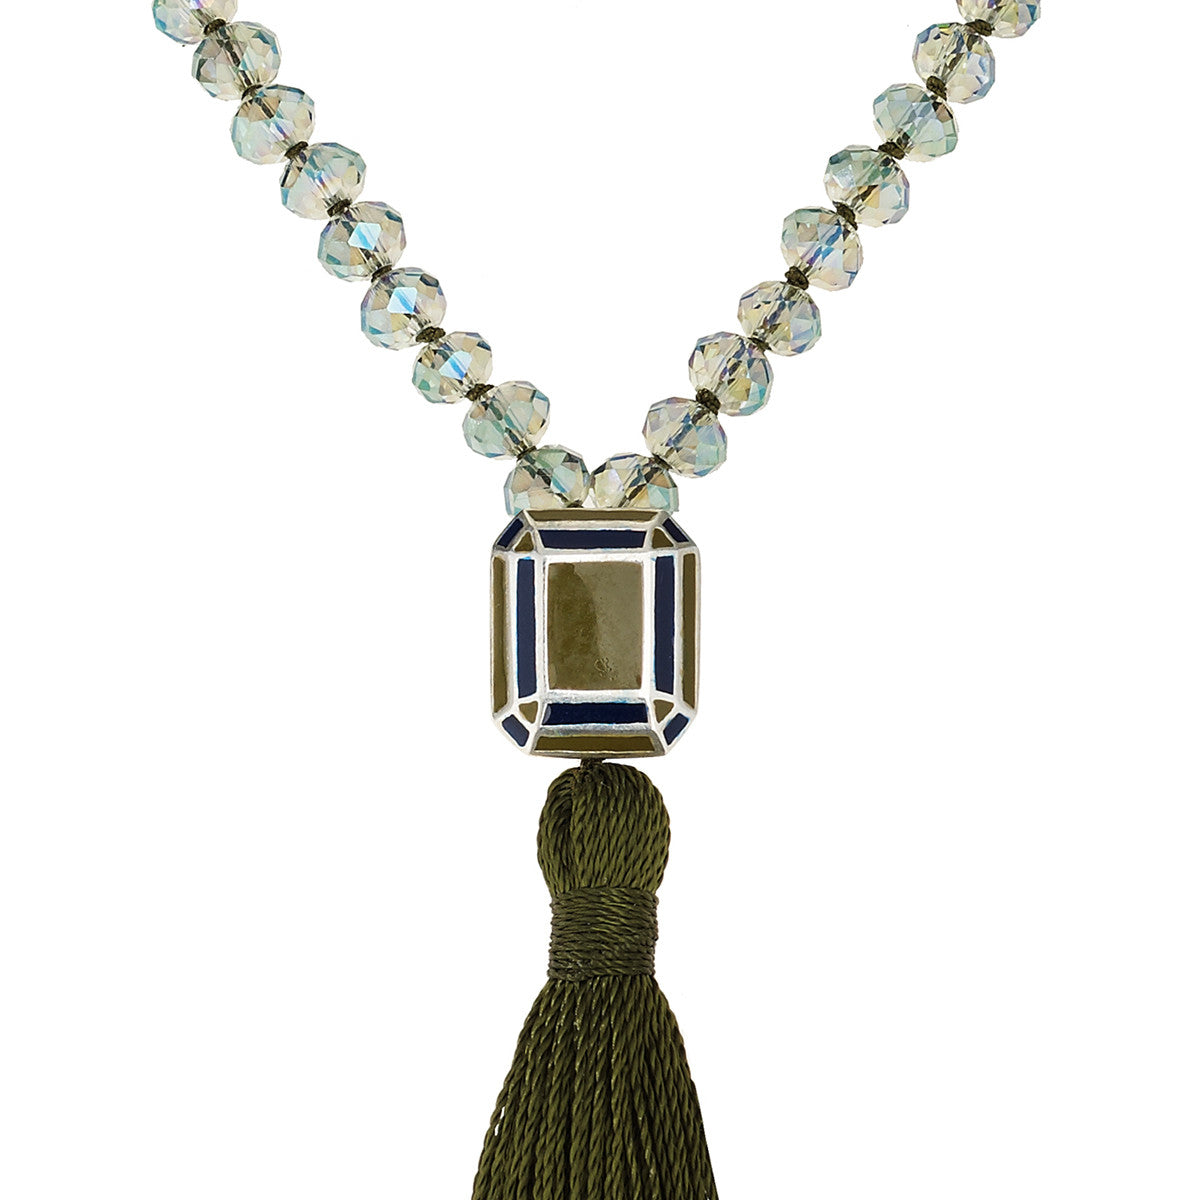 Kompoloi Necklace Rectangle Slv-Blue Green Enamel - Crystal